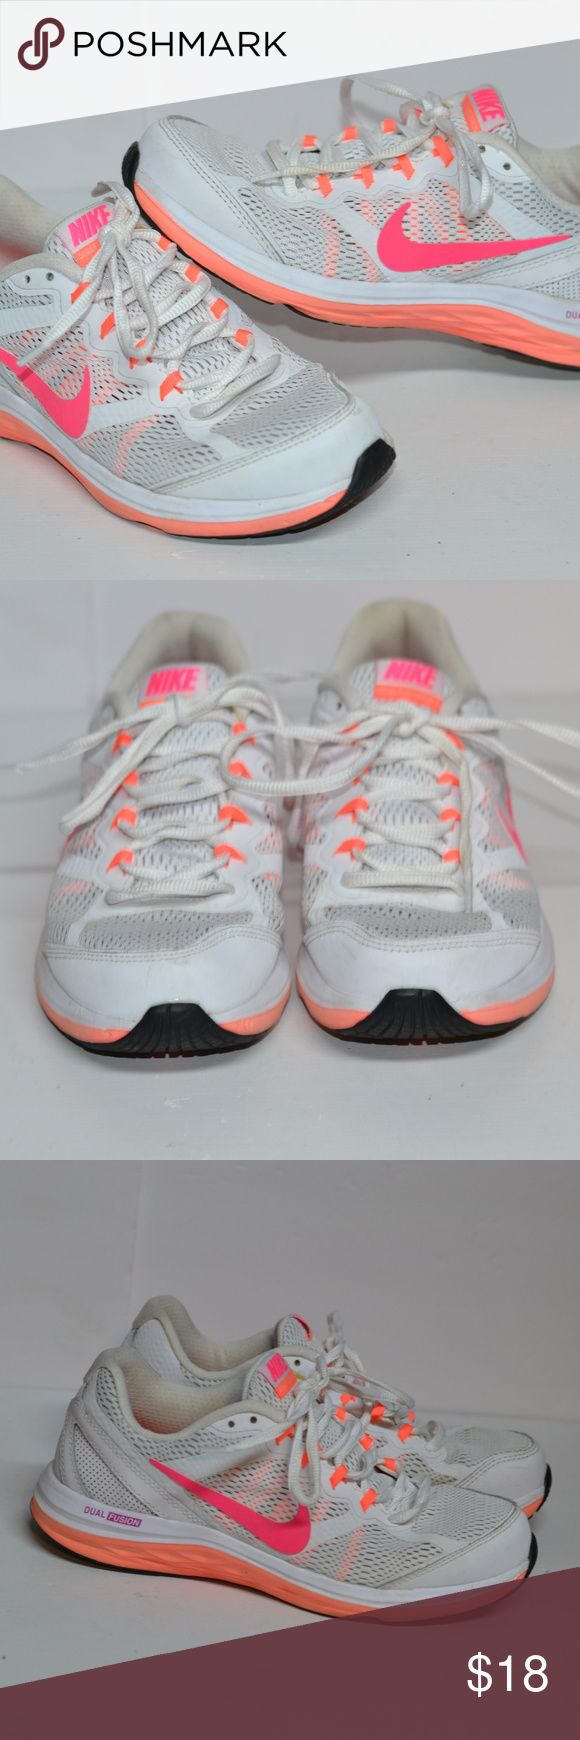 Nike Dual Fusion Neon 7.5 Nike Dual Fusion Neon 7.5 excellent condition just wrong size, Neon Pink and Orange Nike Shoes Athletic Shoes